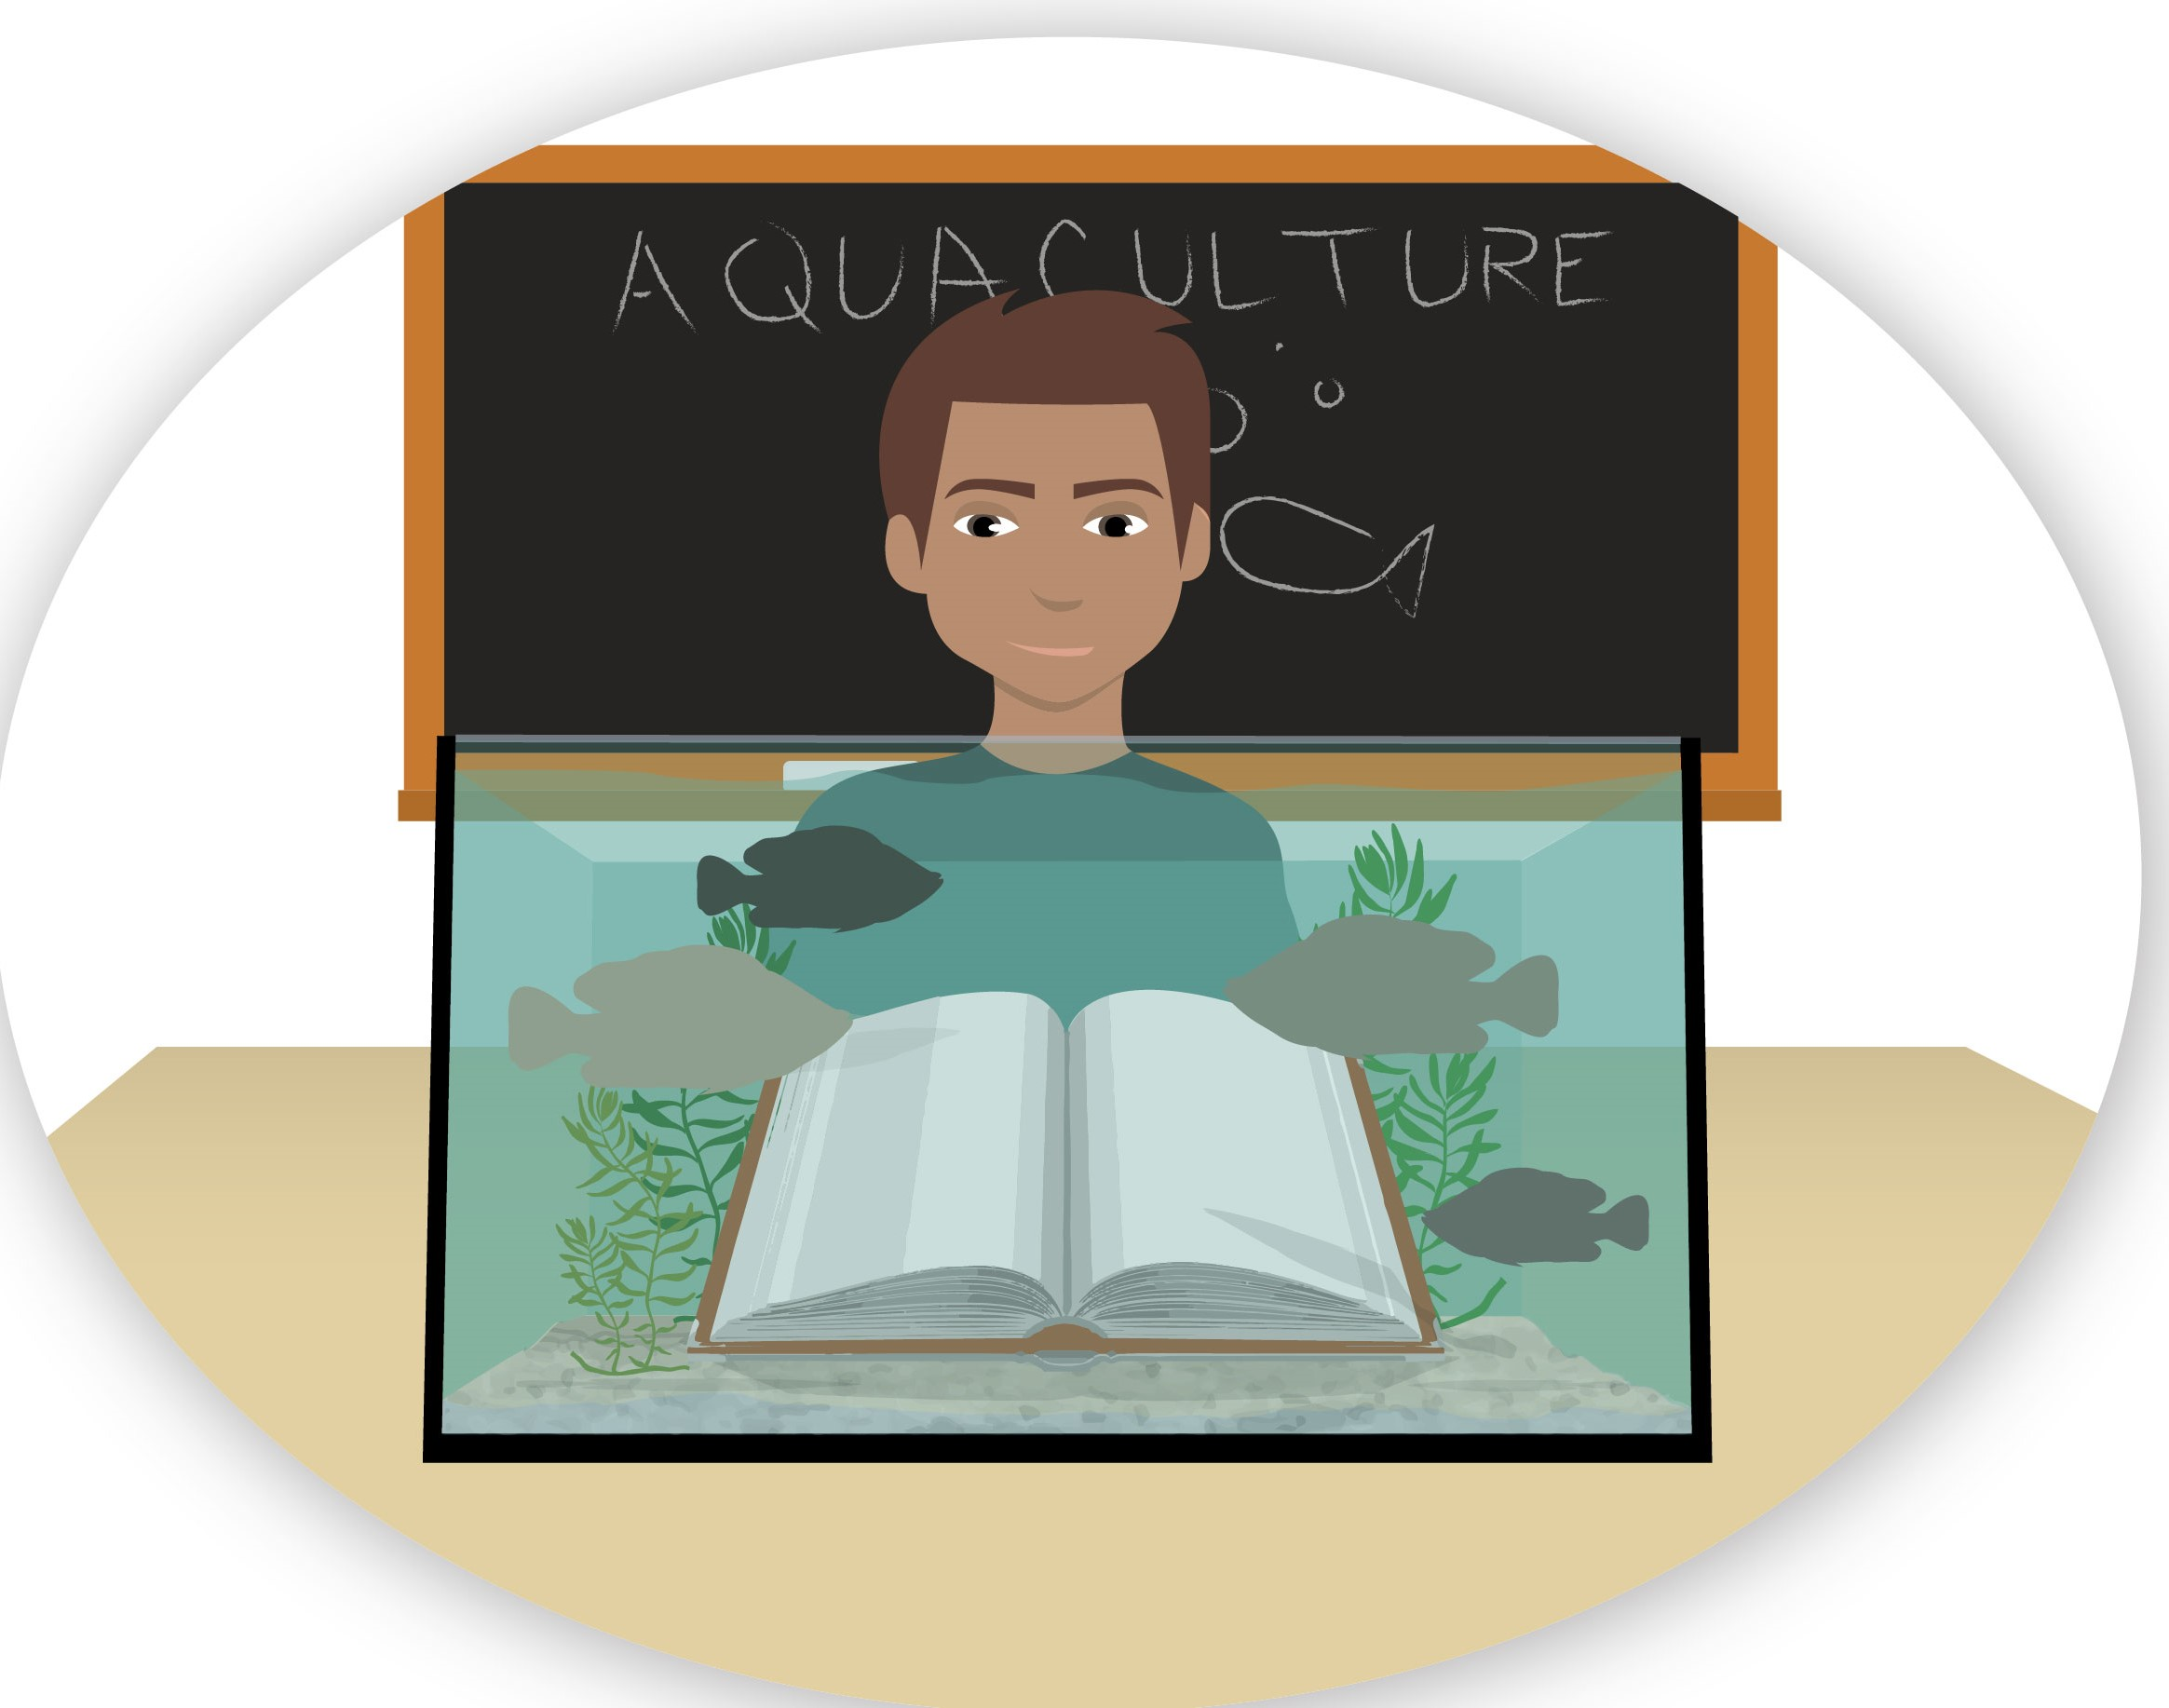 teach aquaculture